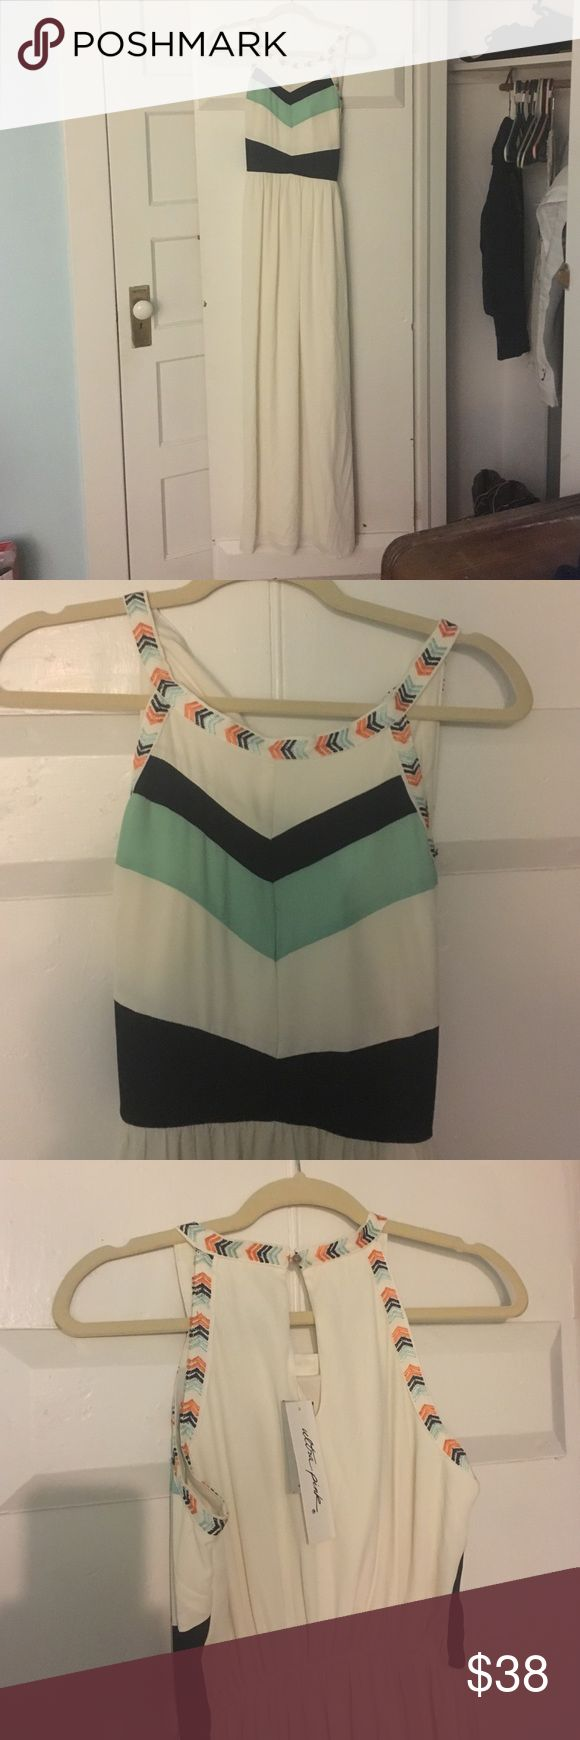 Buckle Ultra Pink Cream Chevron Maxi Dress Very cute cream colored dress with orange, navy, and teal accents. Perfect for summer or fall with a denim jacket. New with tags. Buckle Dresses Maxi